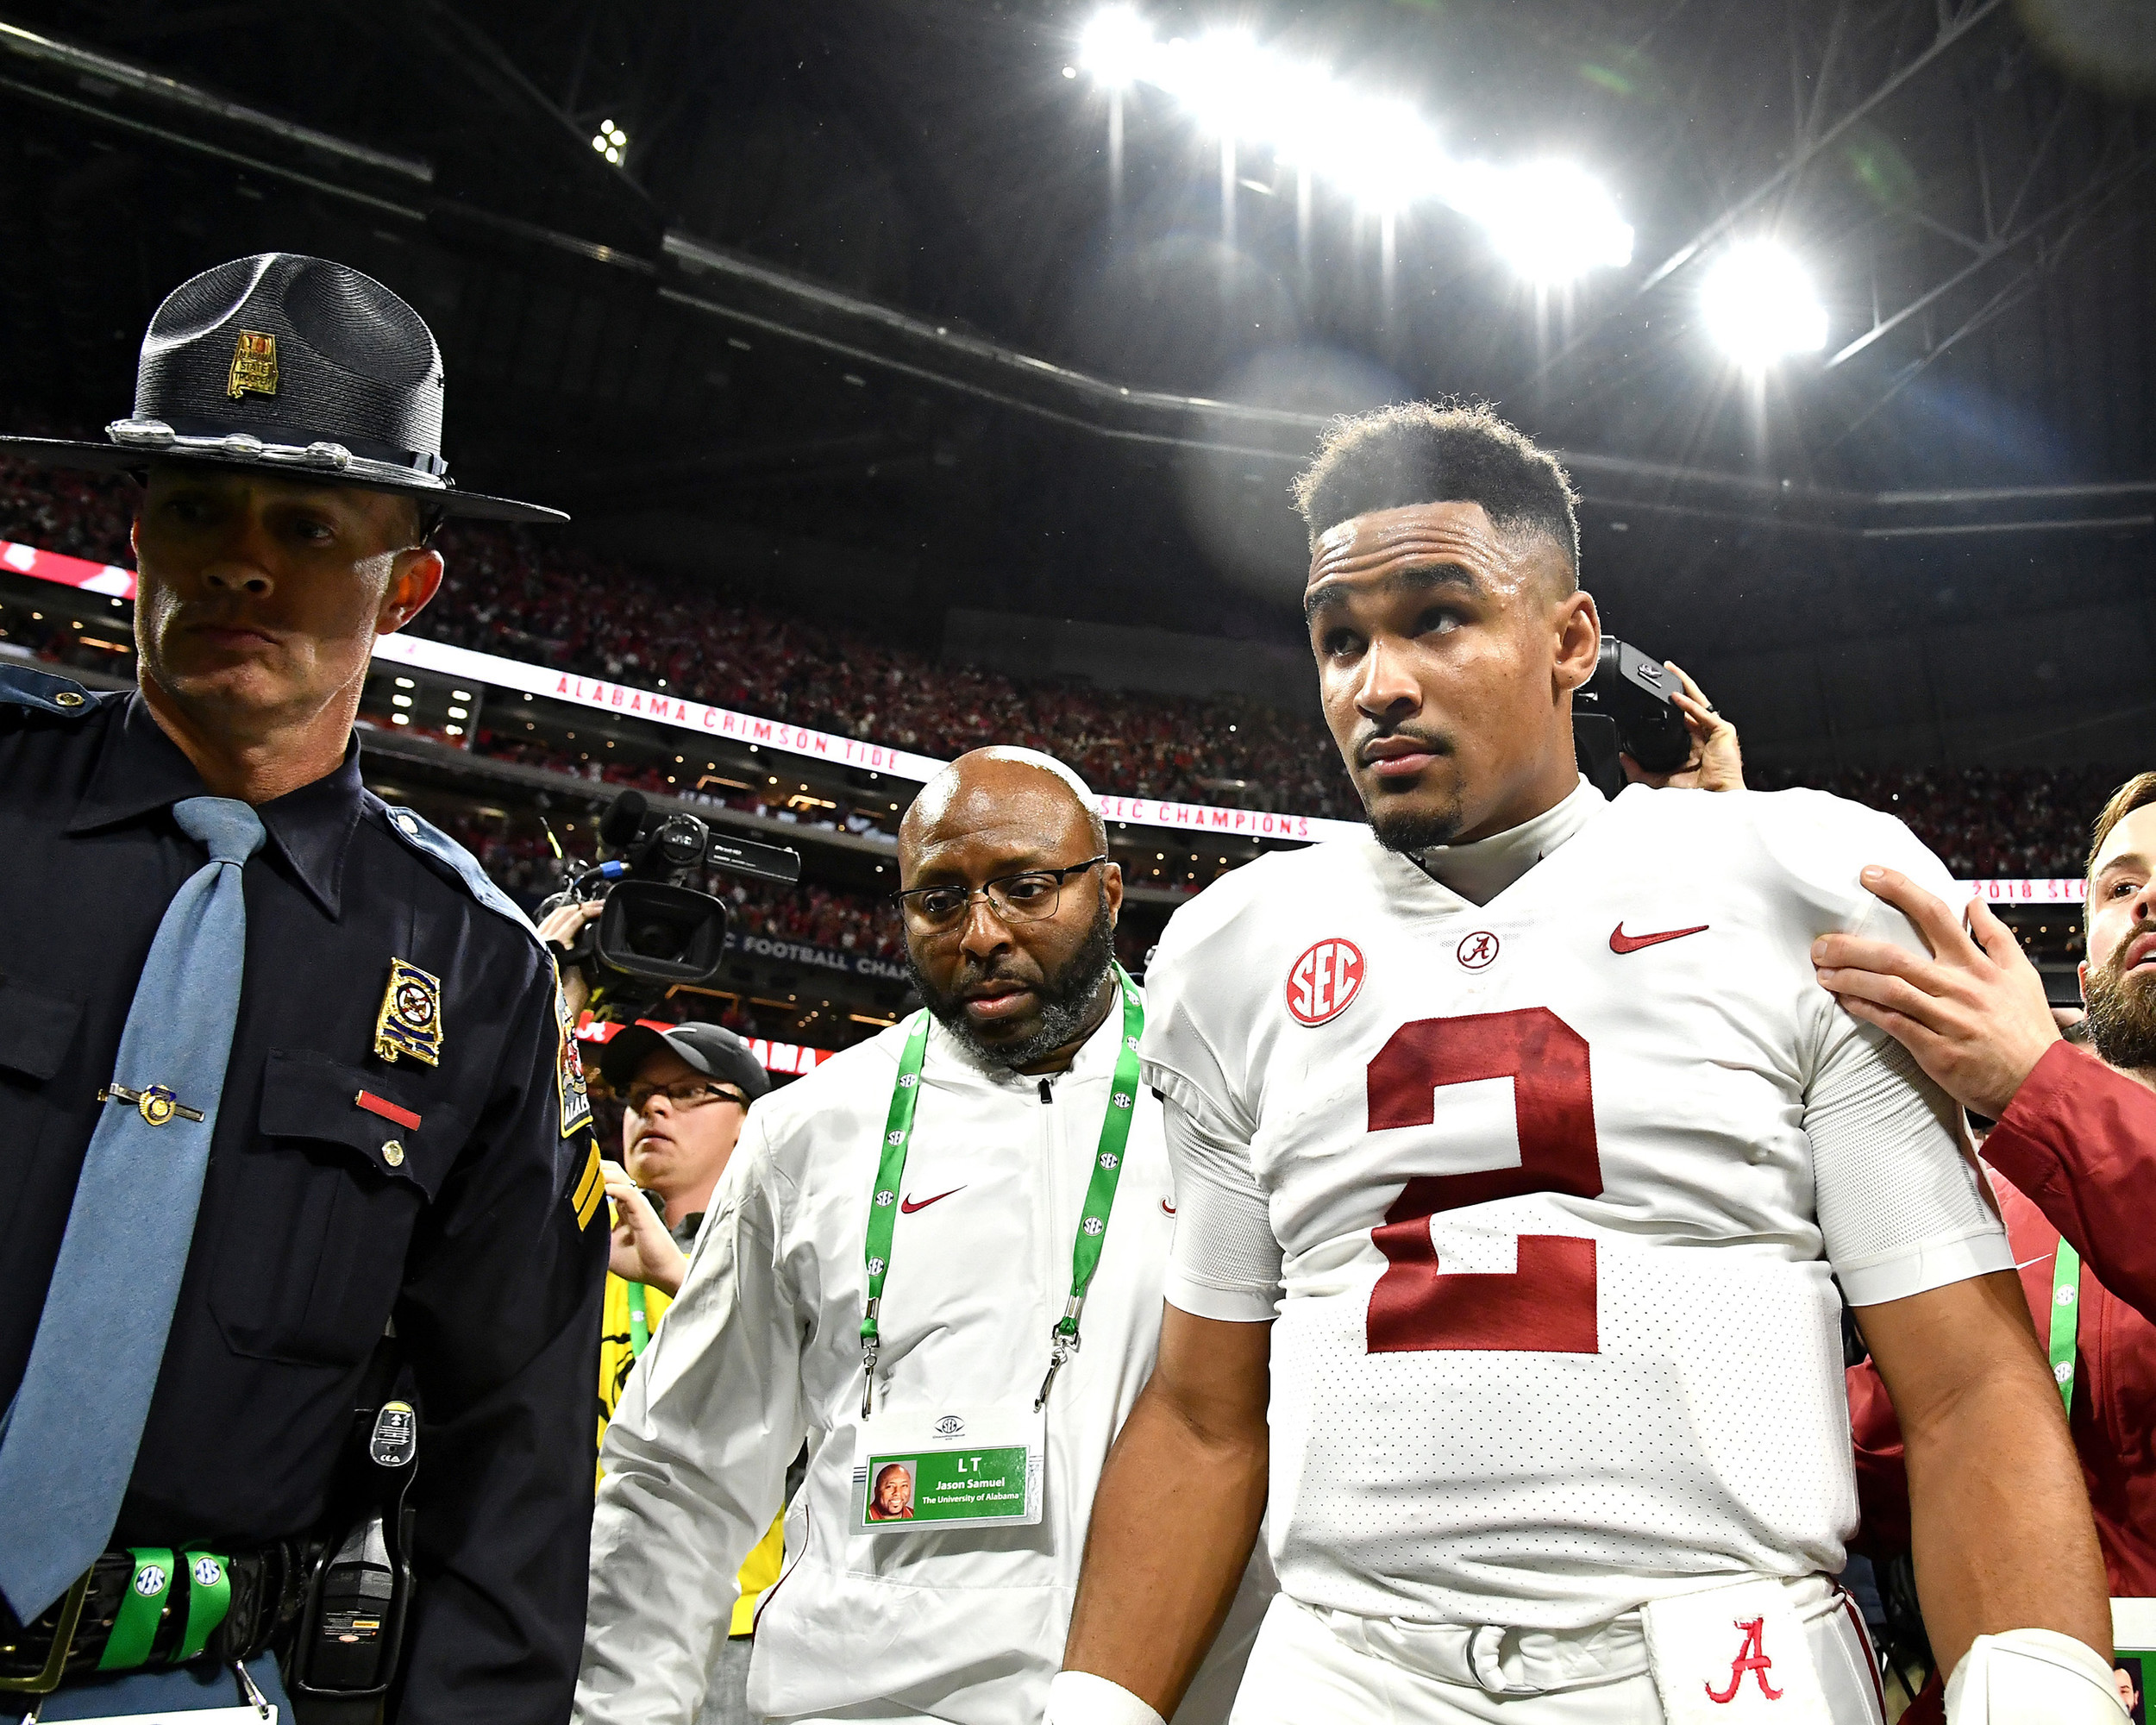 Post-game to the 2018 SEC Championship football game, featuring the Georgia Bulldogs and the Alabama Crimson Tide, at Mercedes-Benz Stadium in Atlanta, Ga., on Dec. 1, 2018. Alabama wins 35-28. (Photo by Lee Walls)